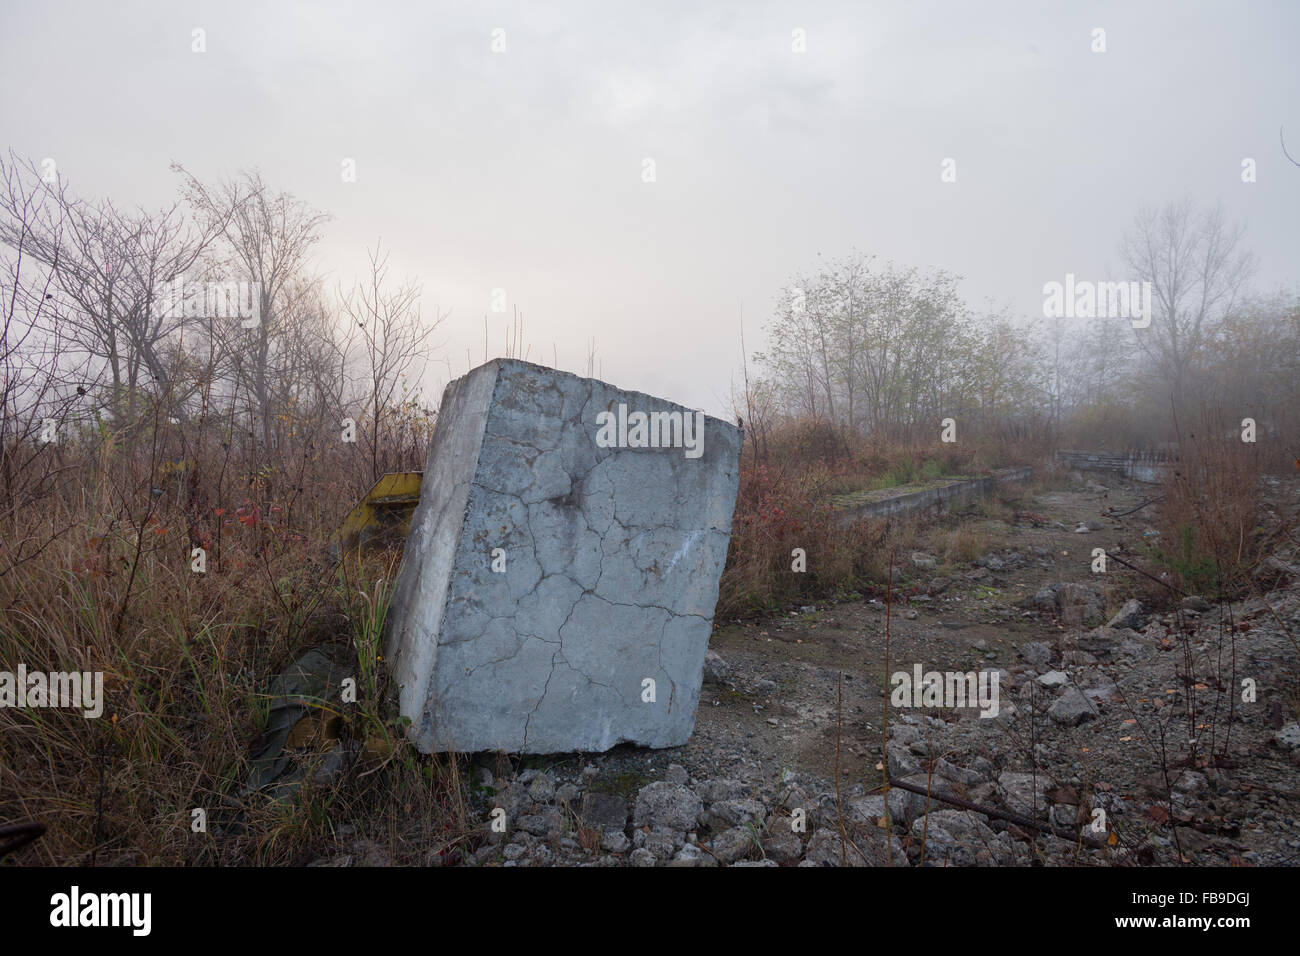 Abandoned concrete structures covered with graffiti at dawn Stock Photo